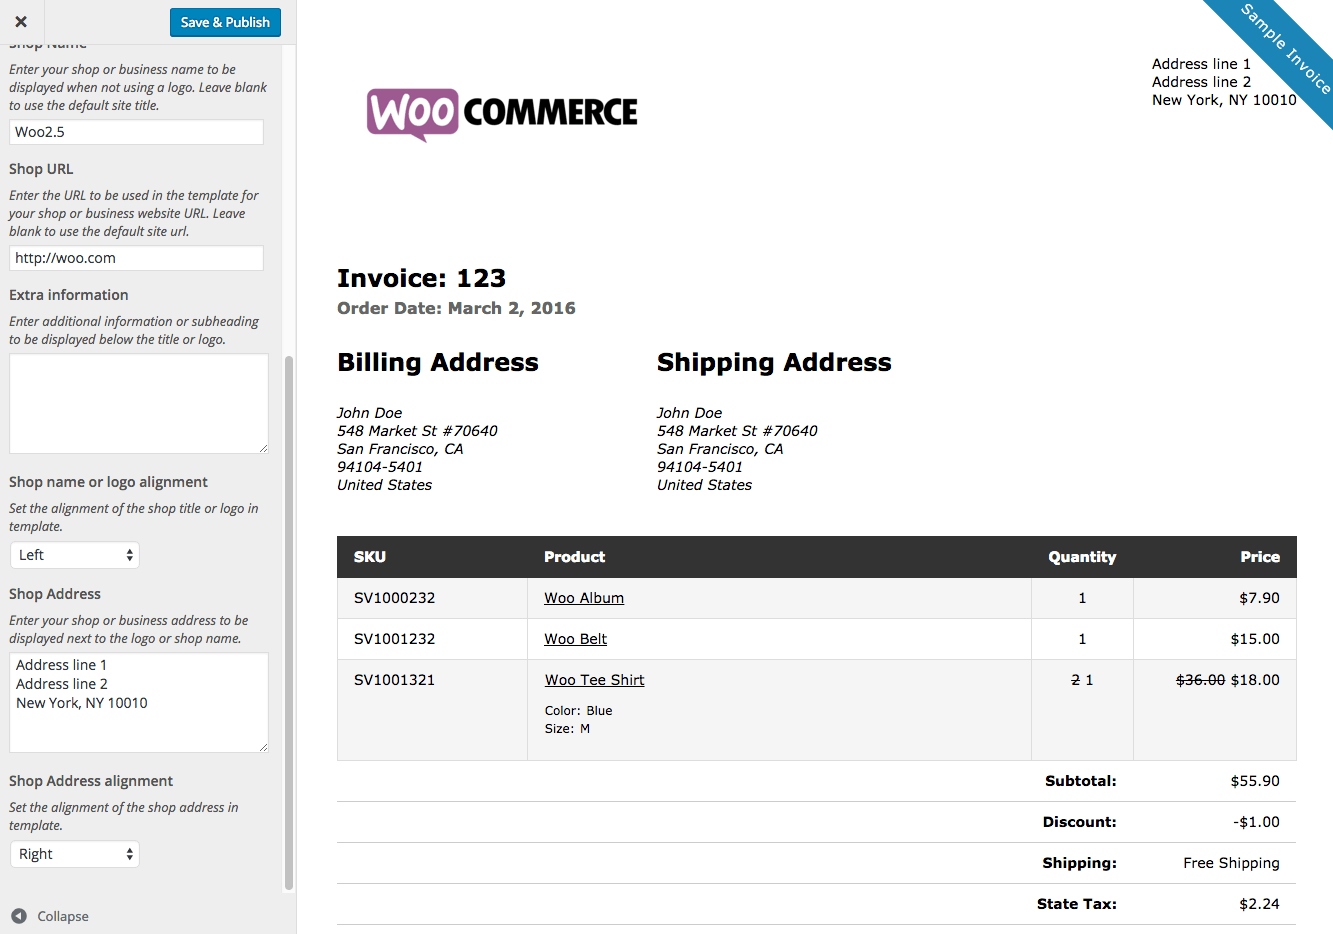 Totallocalus  Pretty Woocommerce Print Invoices Amp Packing Lists  Woocommerce Docs With Licious Woocommerce Print Invoices  Packing Lists Customizer With Beauteous Basic Invoicing Software Also Invoice Template Australia No Gst In Addition Professional Invoice Template Free And Invoice And Quote Software As Well As Invoice Forms Templates Free Additionally Valid Vat Invoice From Docswoocommercecom With Totallocalus  Licious Woocommerce Print Invoices Amp Packing Lists  Woocommerce Docs With Beauteous Woocommerce Print Invoices  Packing Lists Customizer And Pretty Basic Invoicing Software Also Invoice Template Australia No Gst In Addition Professional Invoice Template Free From Docswoocommercecom